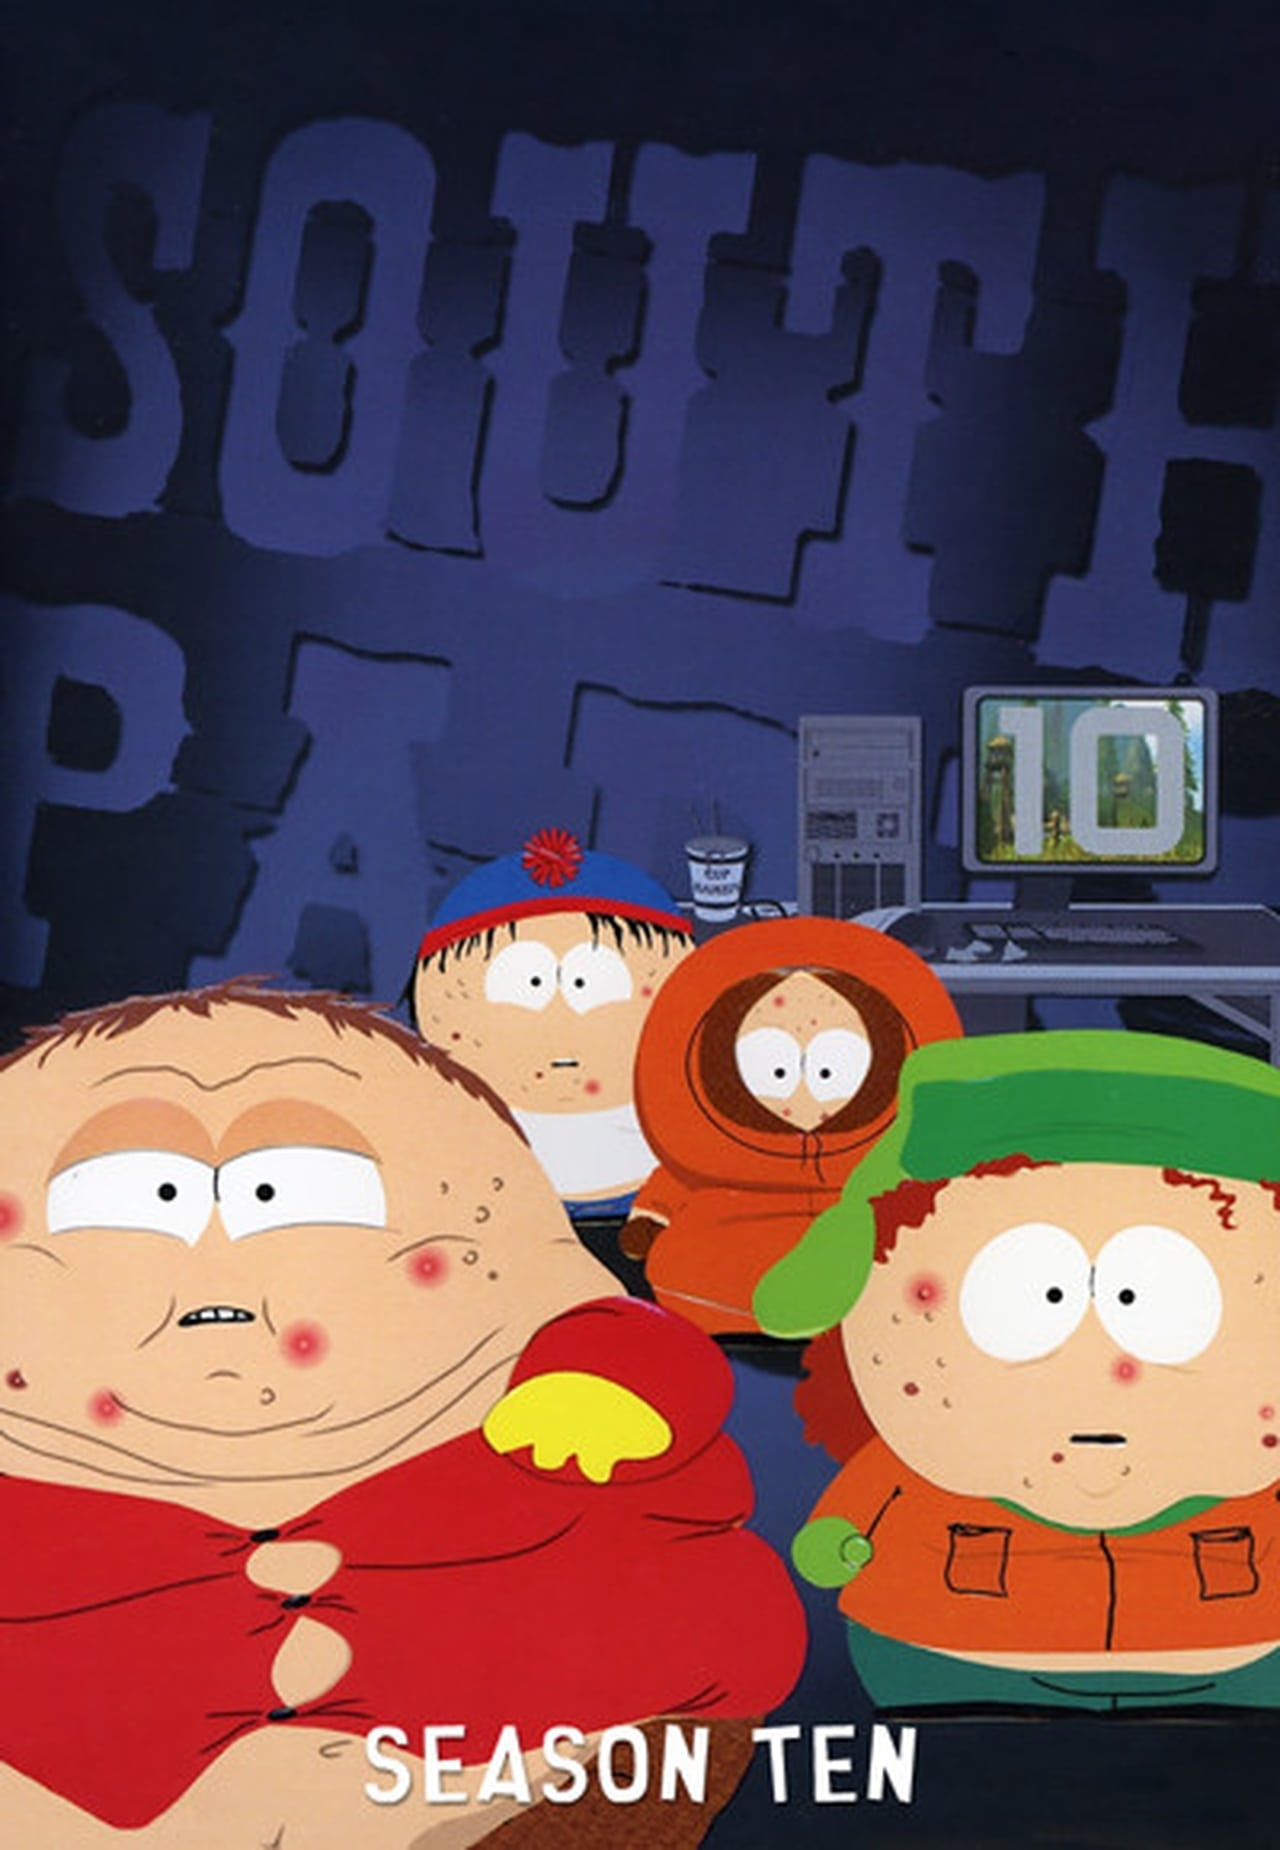 Putlocker South Park Season 10 (2006)